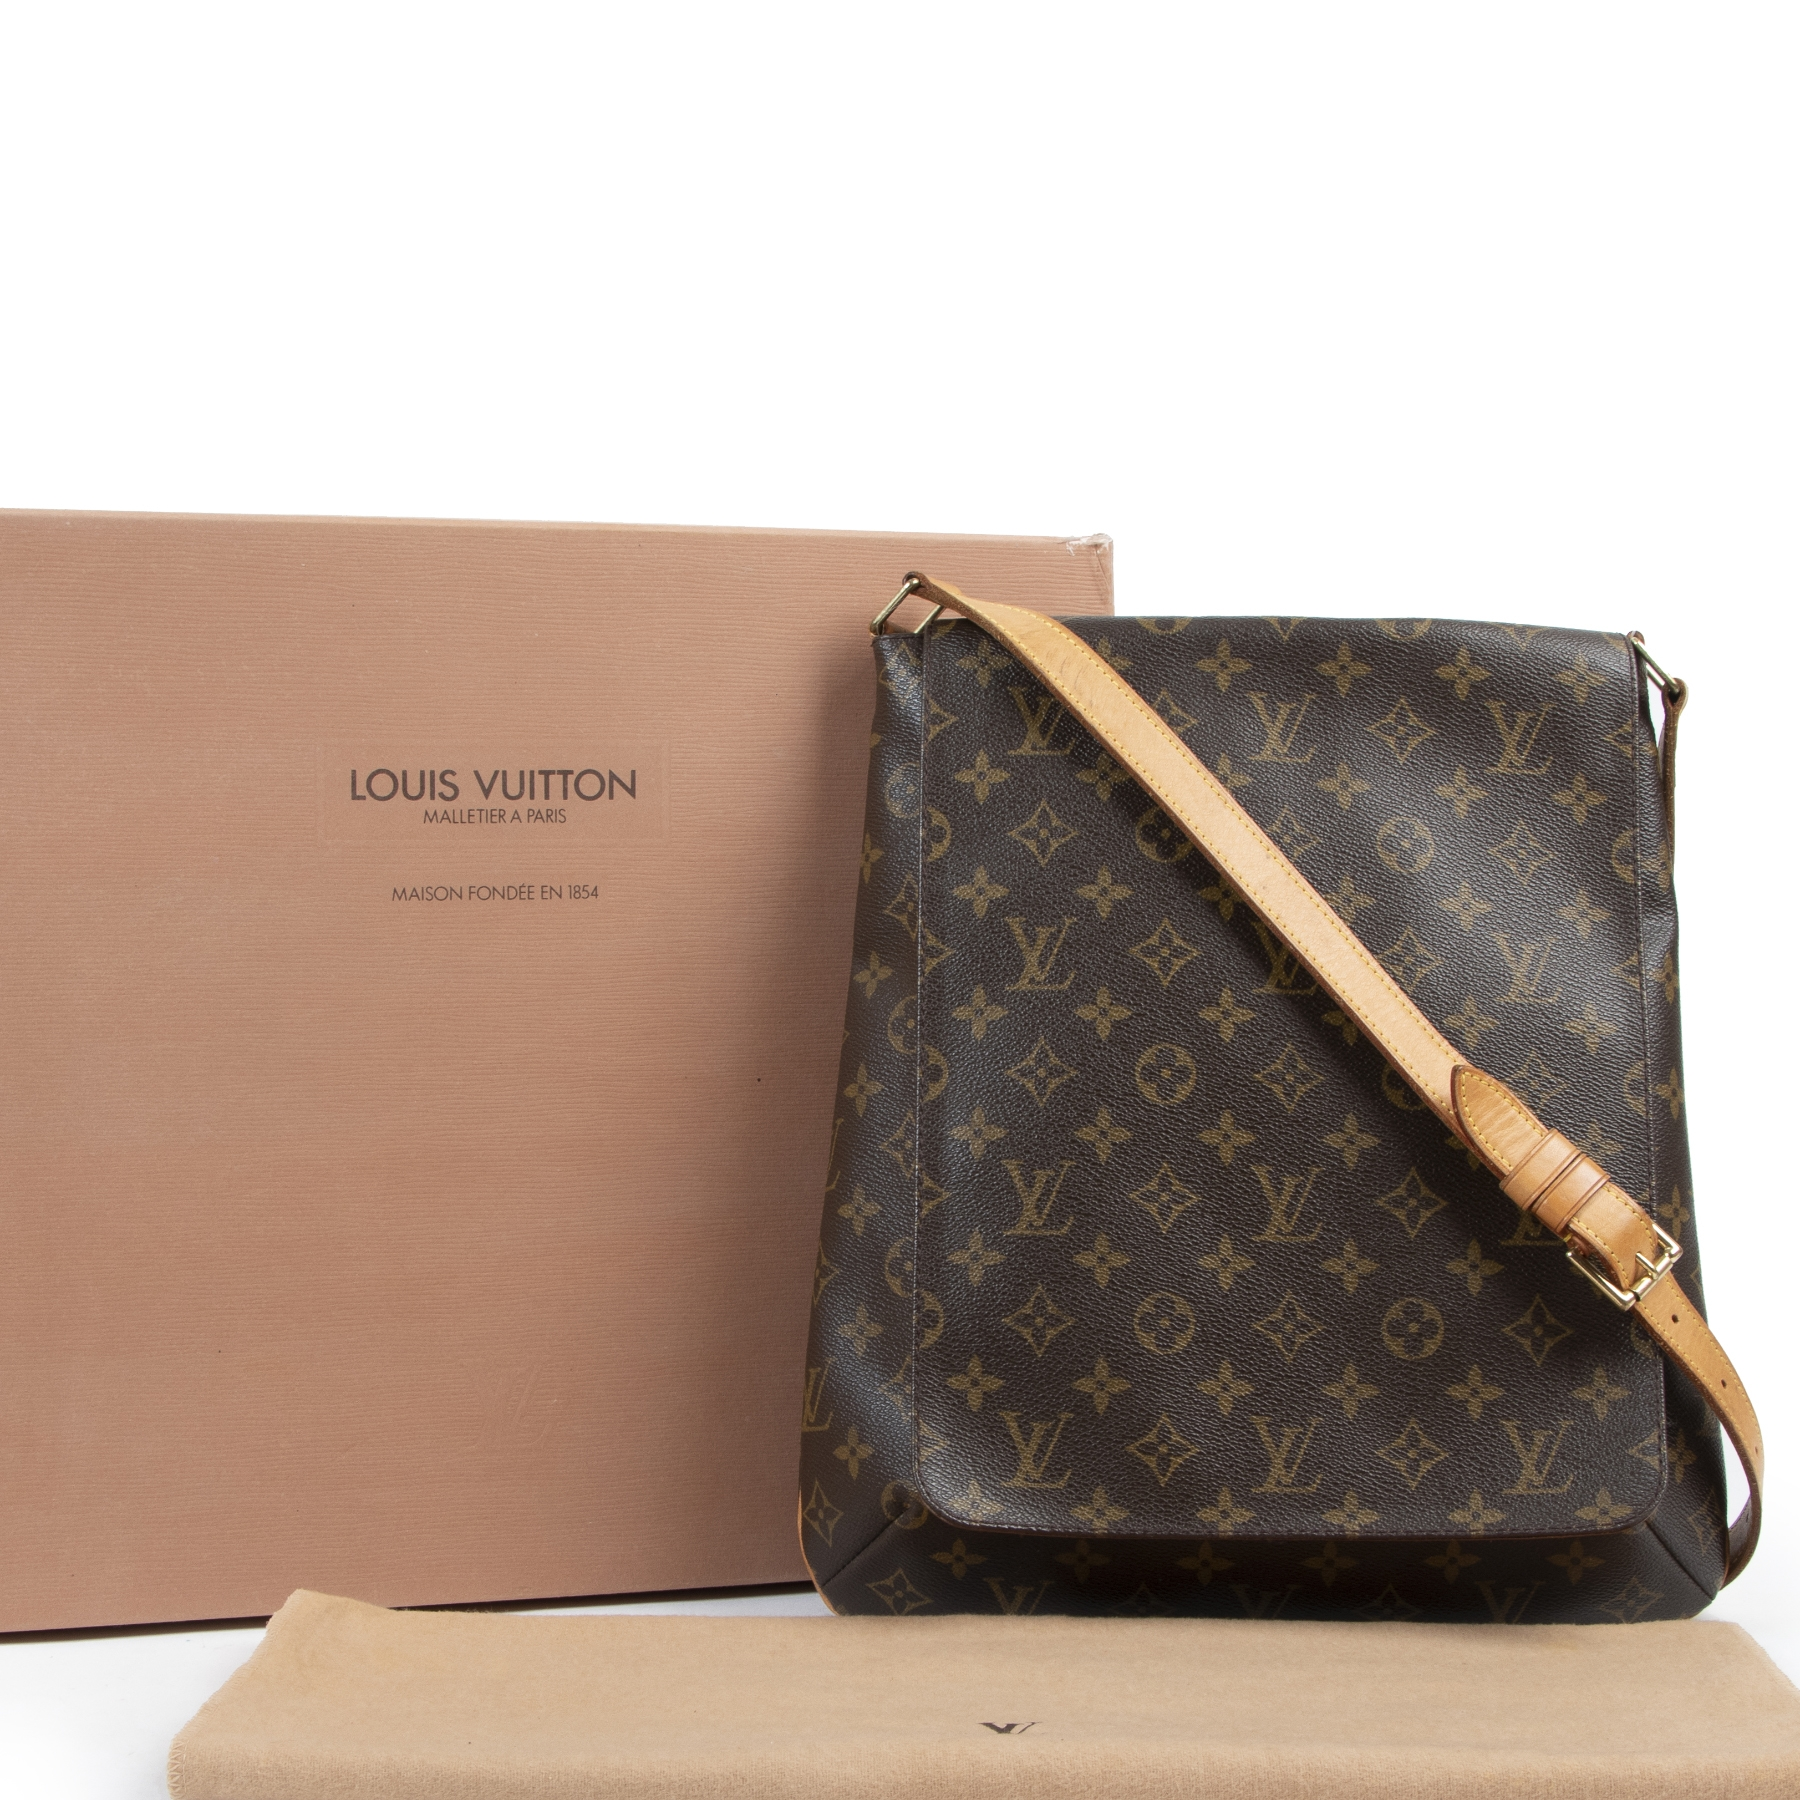 Louis Vuitton Musette Monogram Shoulder Bag